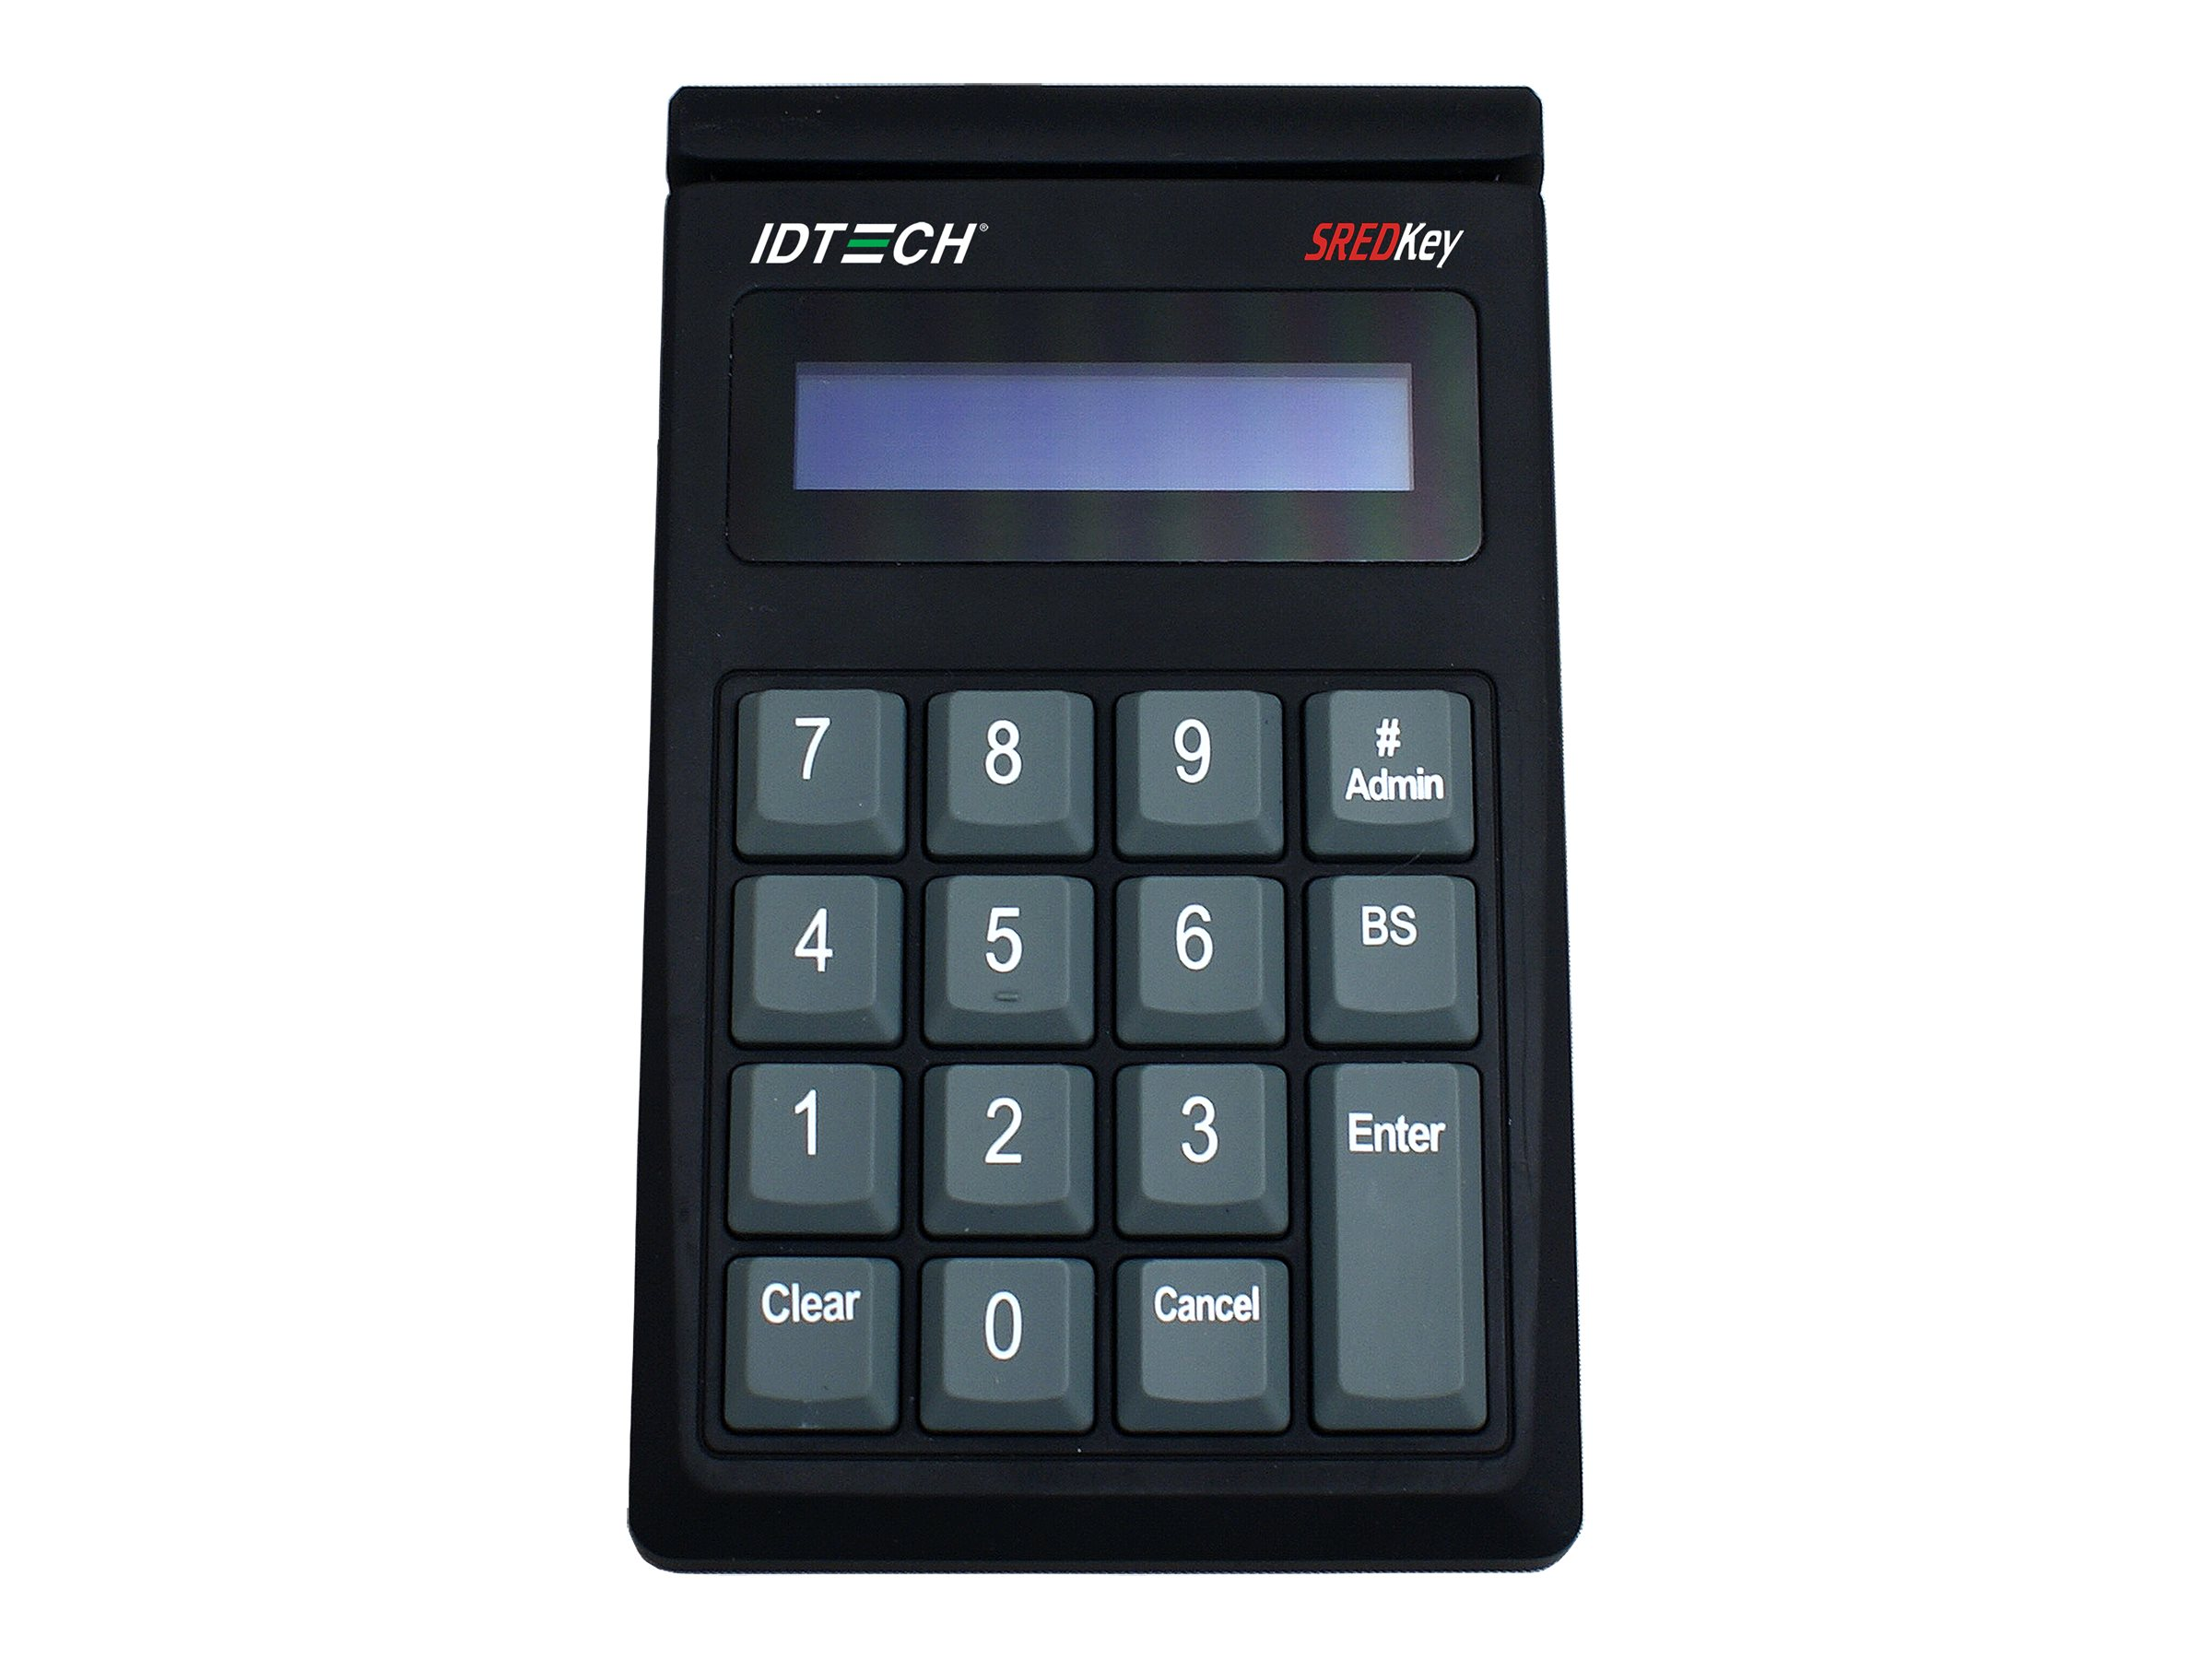 ID Tech SREDKey Keypad w  MSR Track 3, AES Encryption, Enhanced Format, USB Keyboard, Black, IDSK-534833AEB